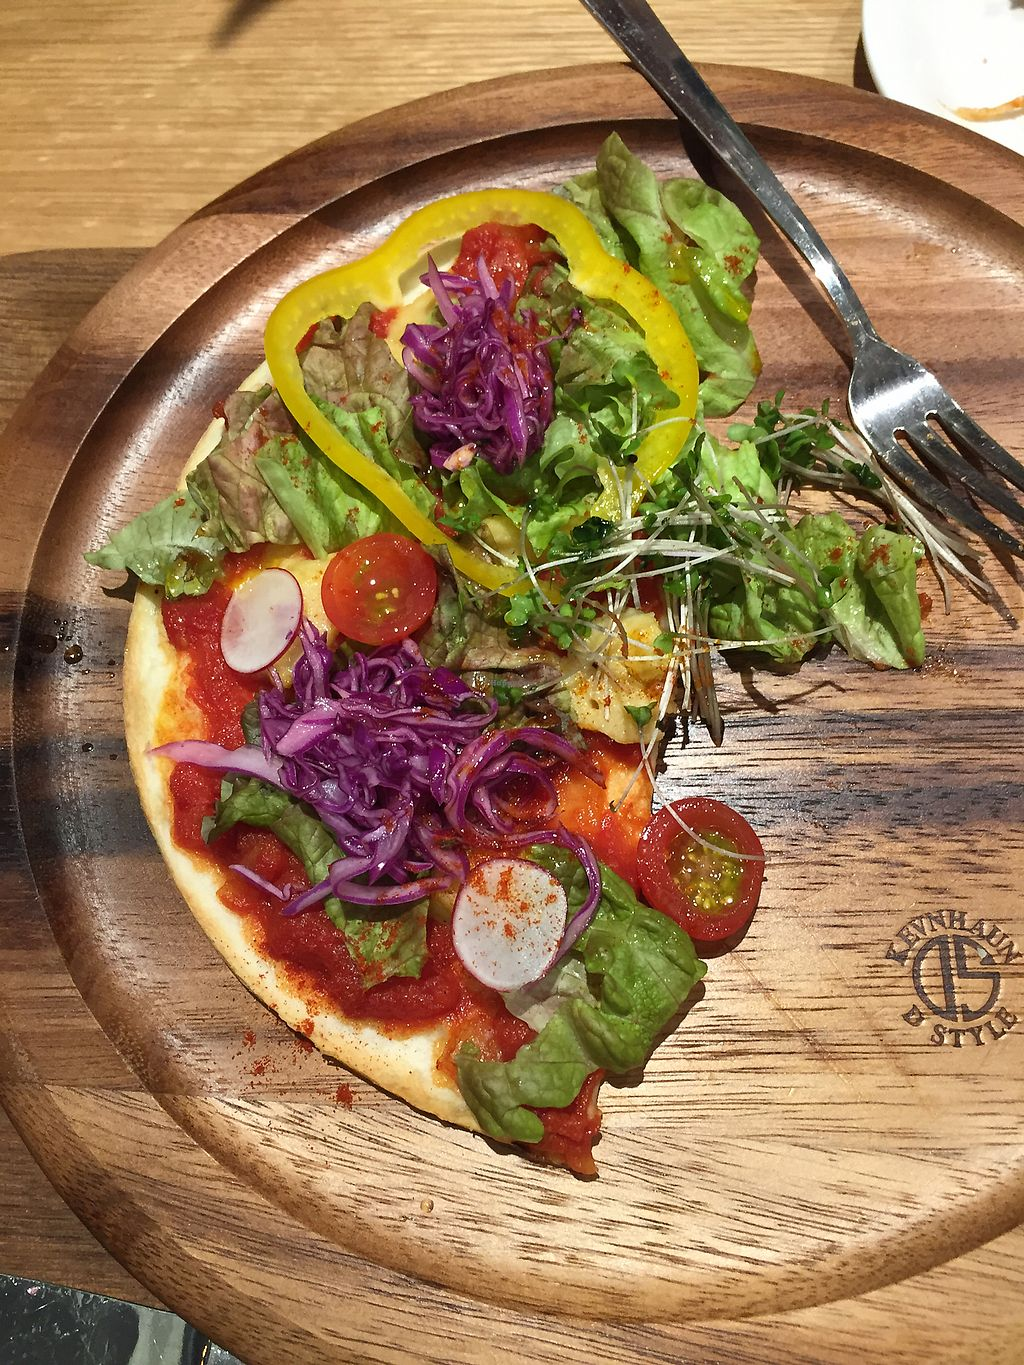 """Photo of Aasics Connection  by <a href=""""/members/profile/Jkcook"""">Jkcook</a> <br/>Vegan Pizza—delicious, especially the sauce <br/> April 6, 2018  - <a href='/contact/abuse/image/116436/381551'>Report</a>"""